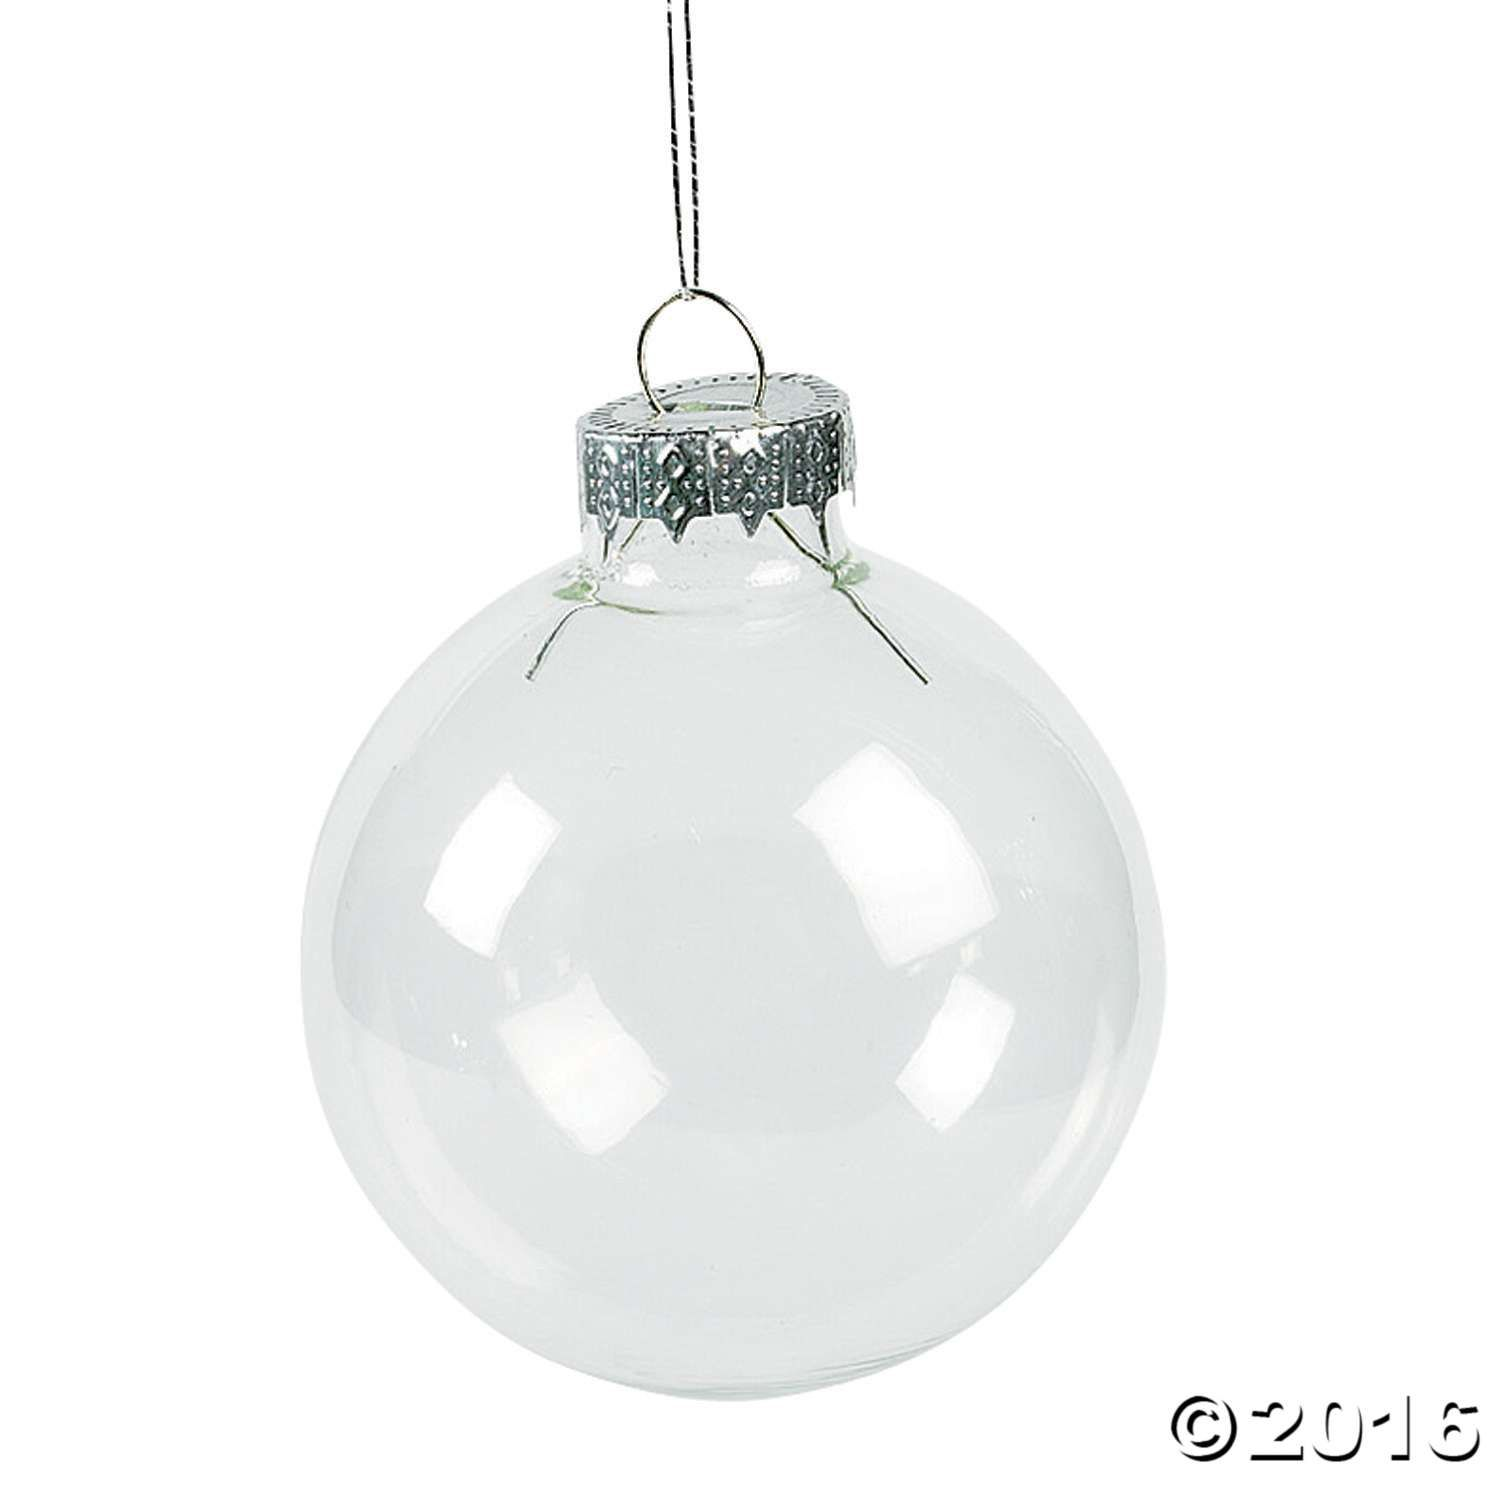 Diy clear round christmas ornaments crafts pinterest oriental diy clear round christmas ornaments solutioingenieria Image collections